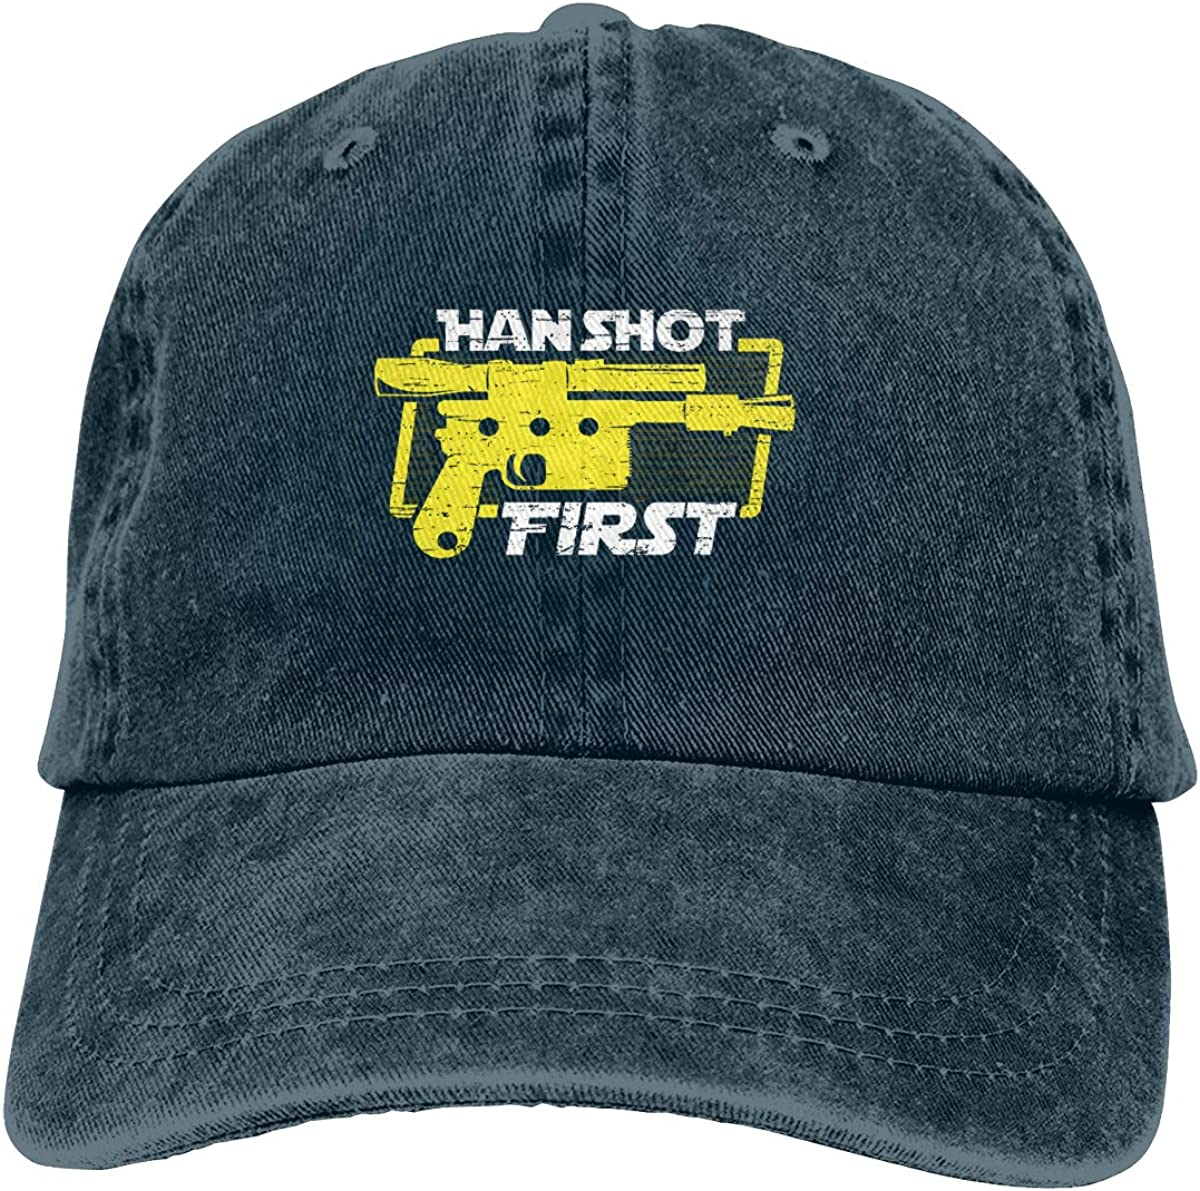 Han Shot First Caps Sports Trucker Caps Pattern Strapback Hat for Men//Women